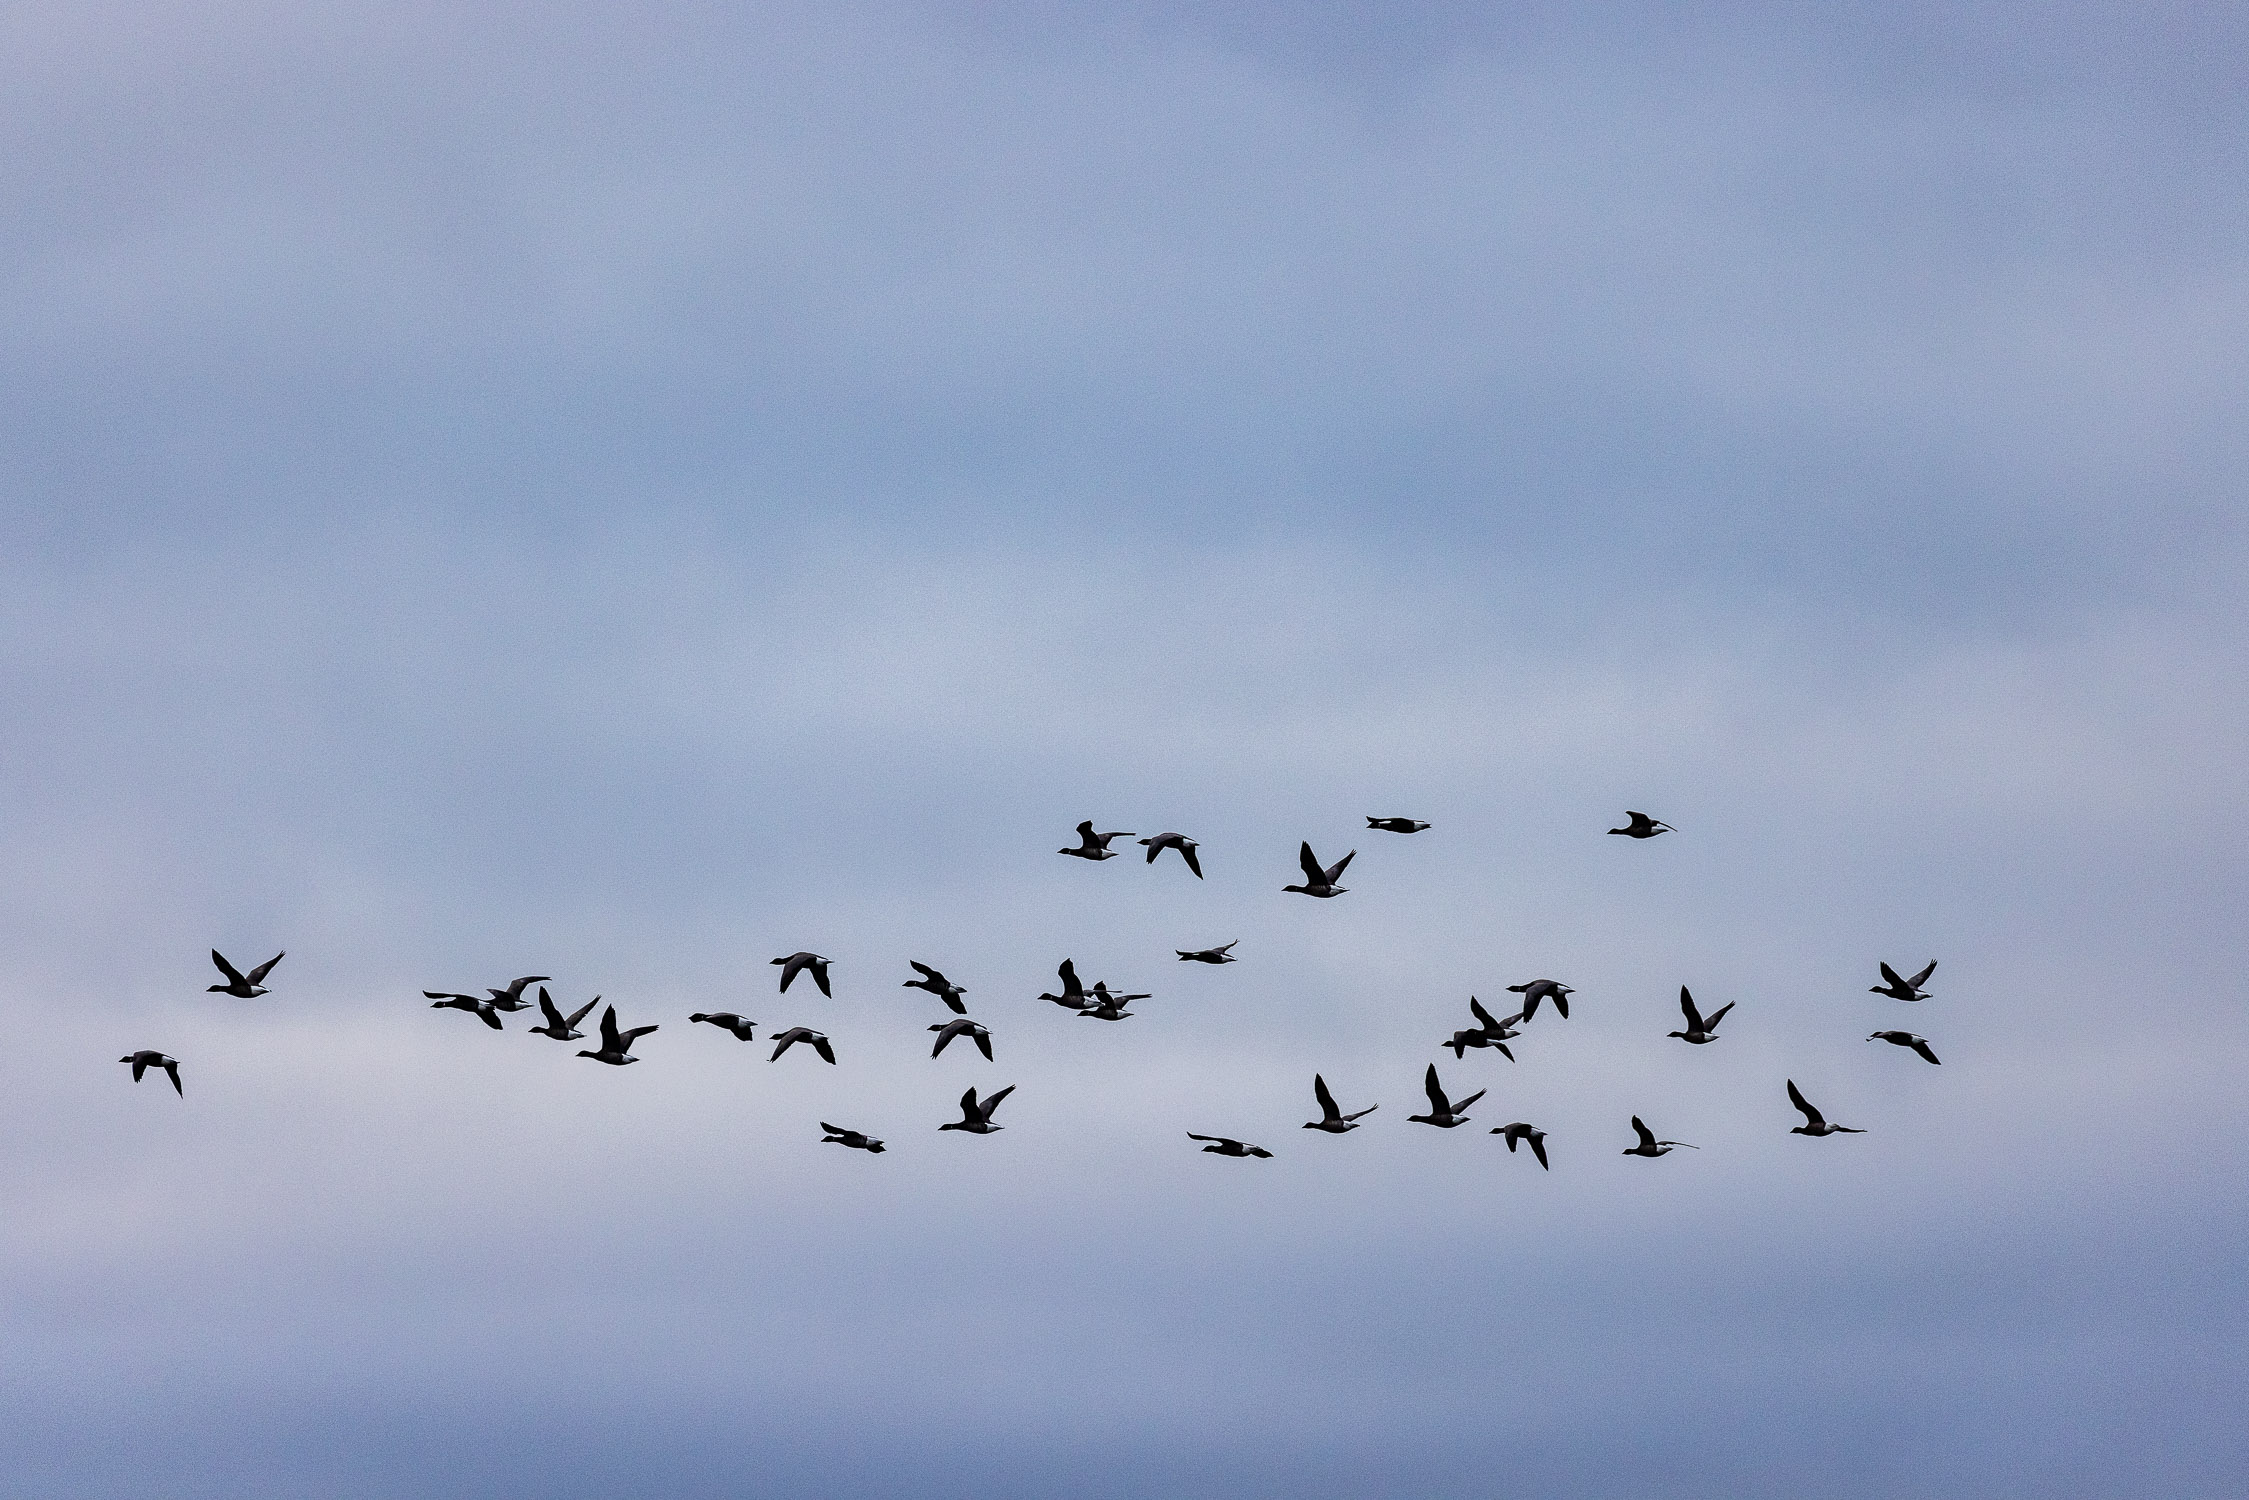 Geese in flight over Keyhaven Marshes